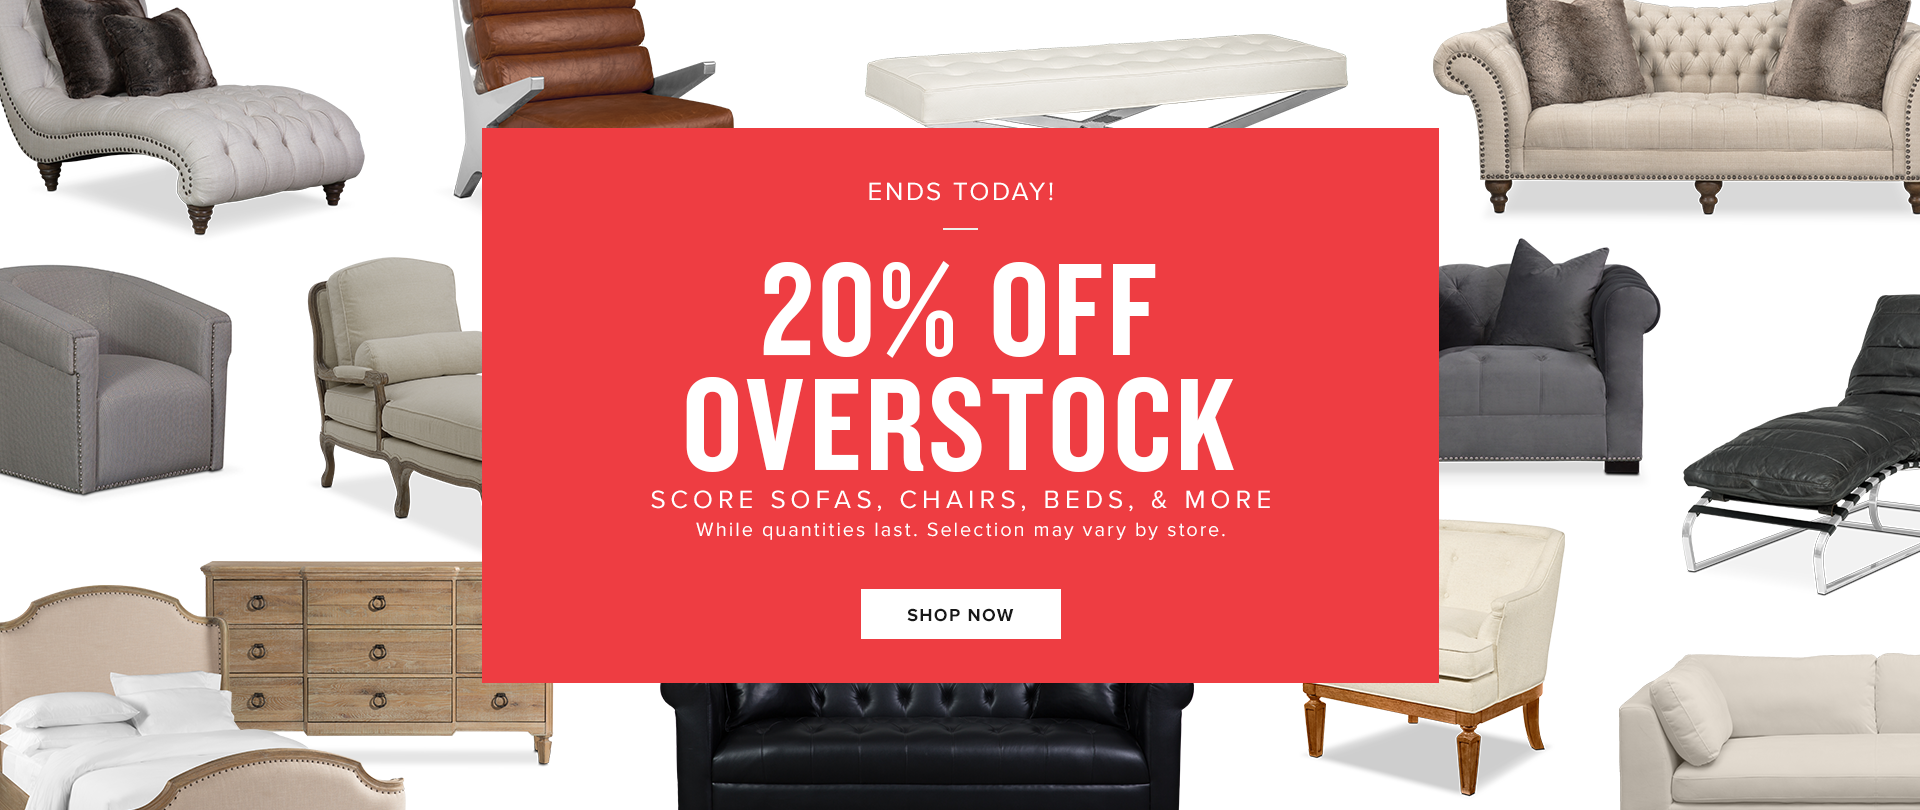 ends today! 20% off overstock